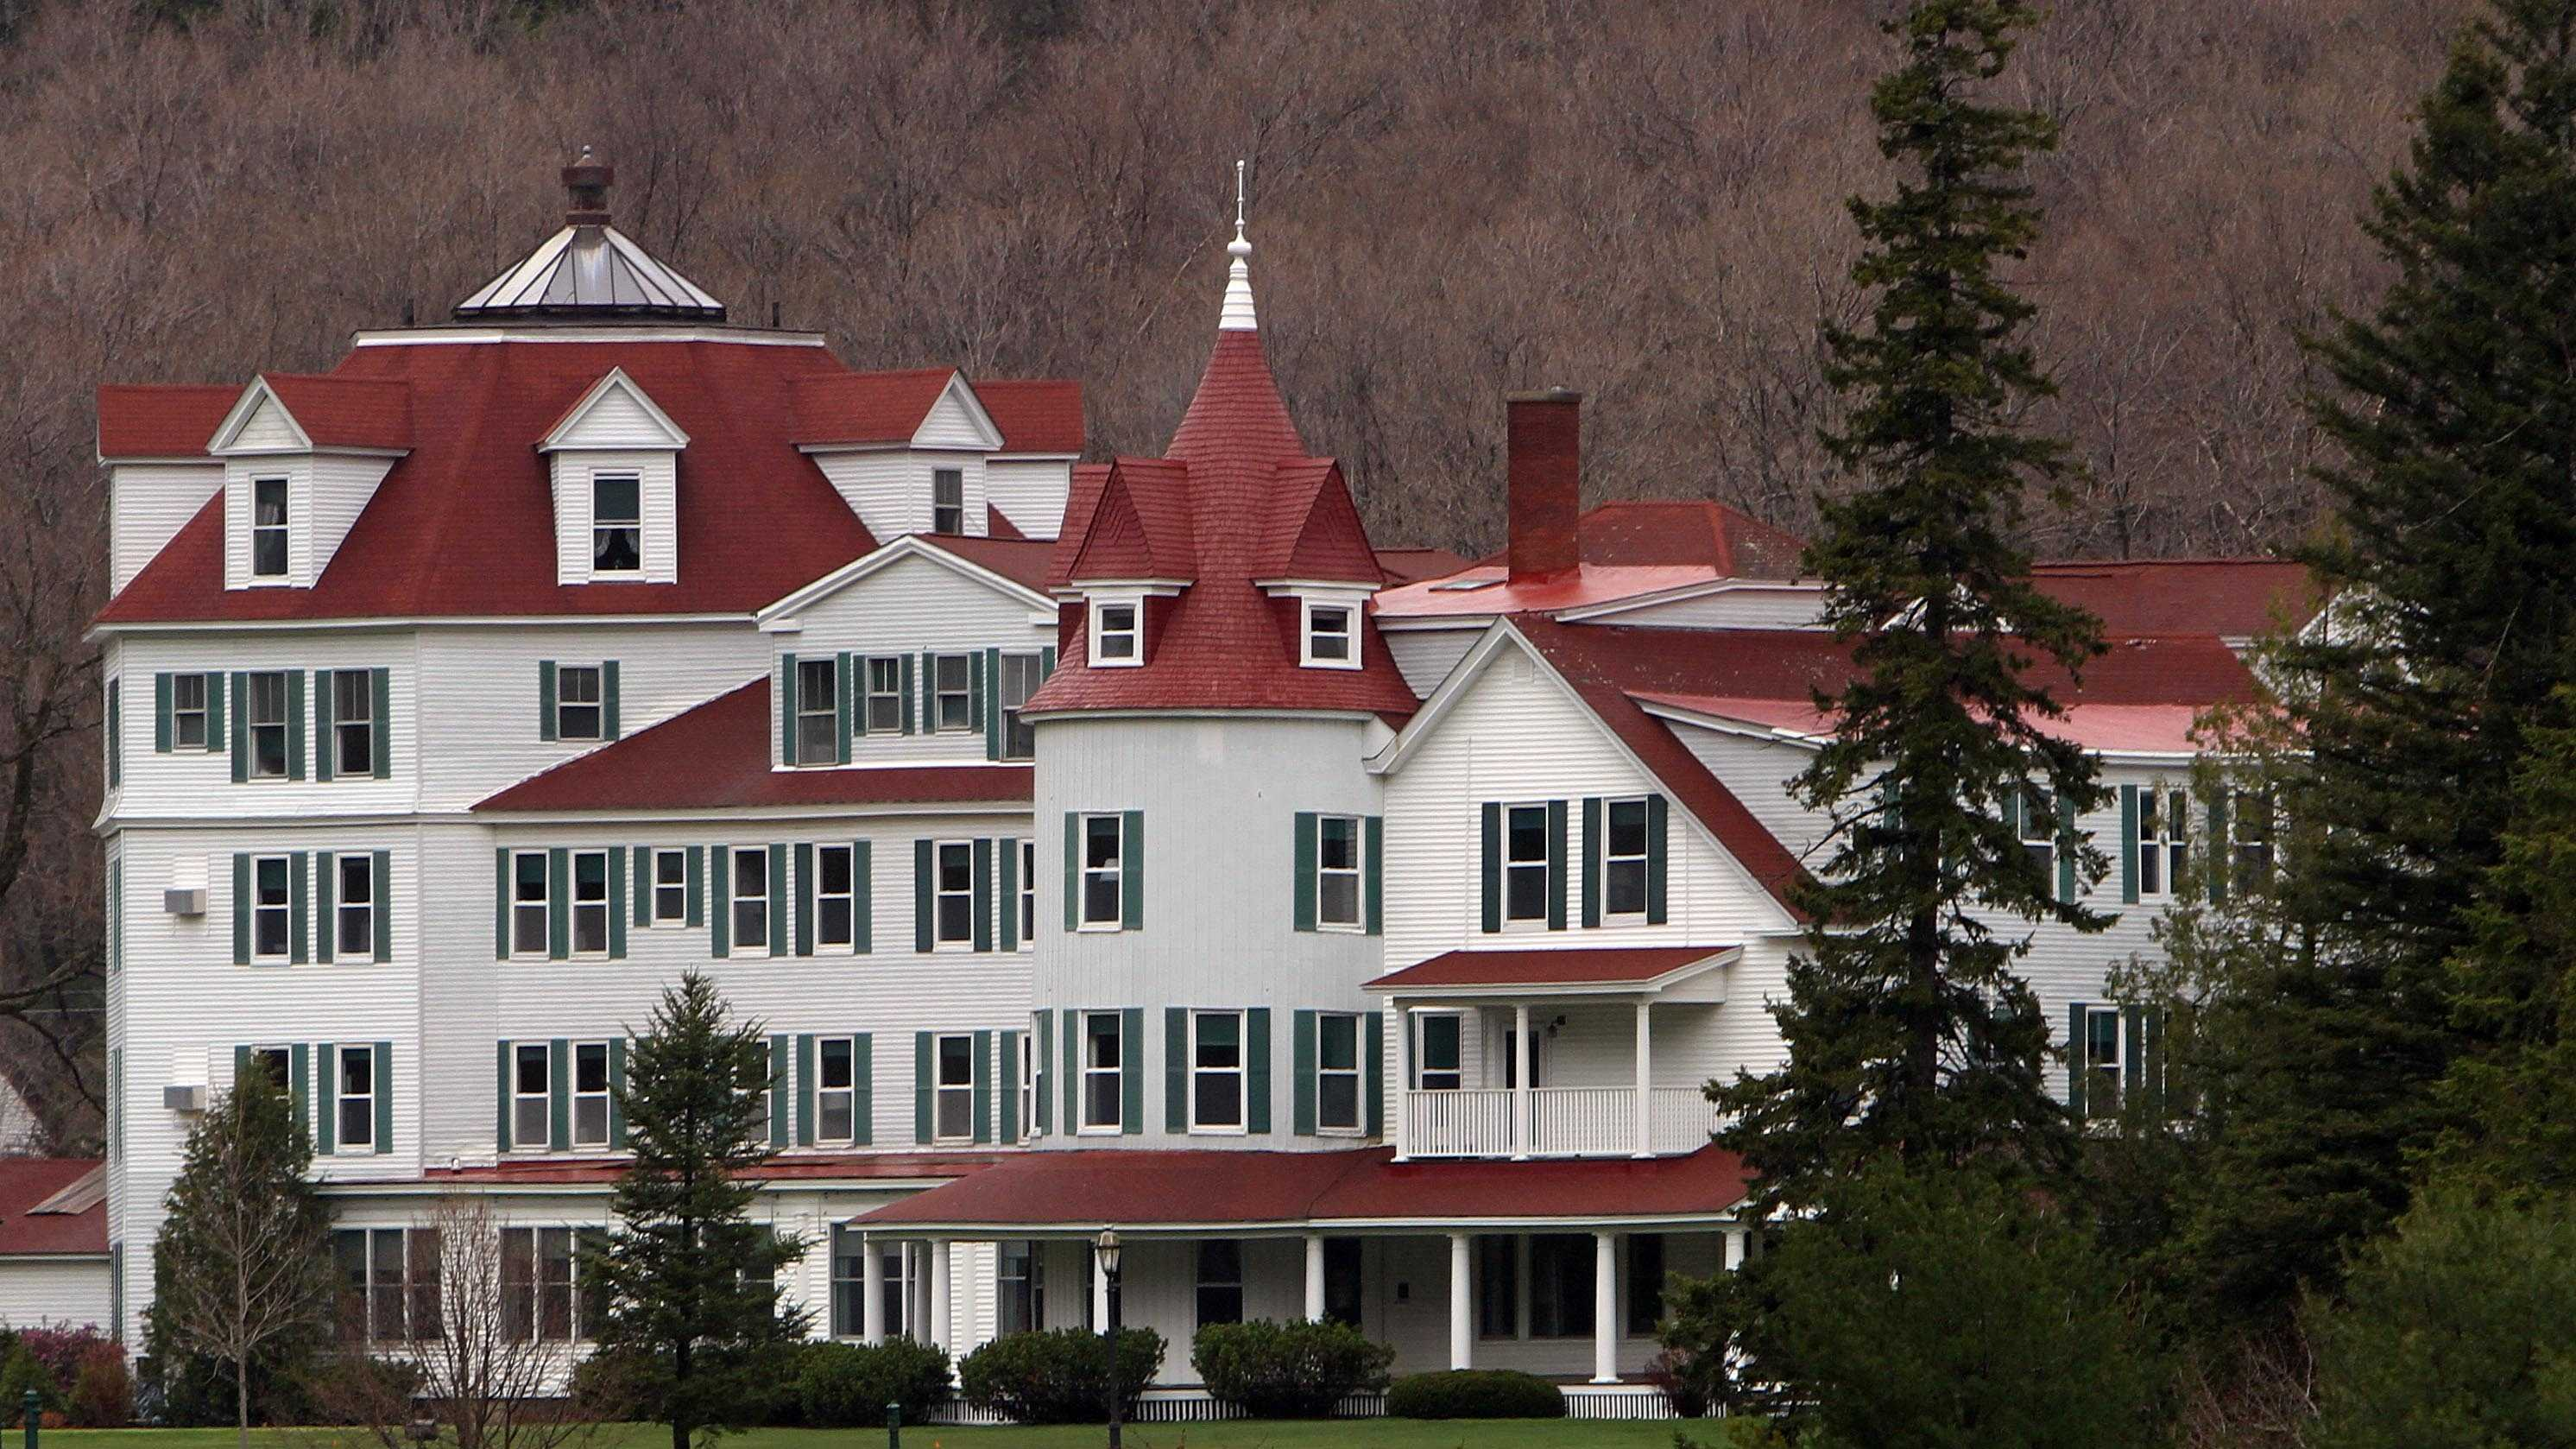 A large sign is seen in front of the Balsams Hotel where an auction was held to clear out the nearly 150-year-old resort. The resort was sold last year to two businessmen for $2.3 million.